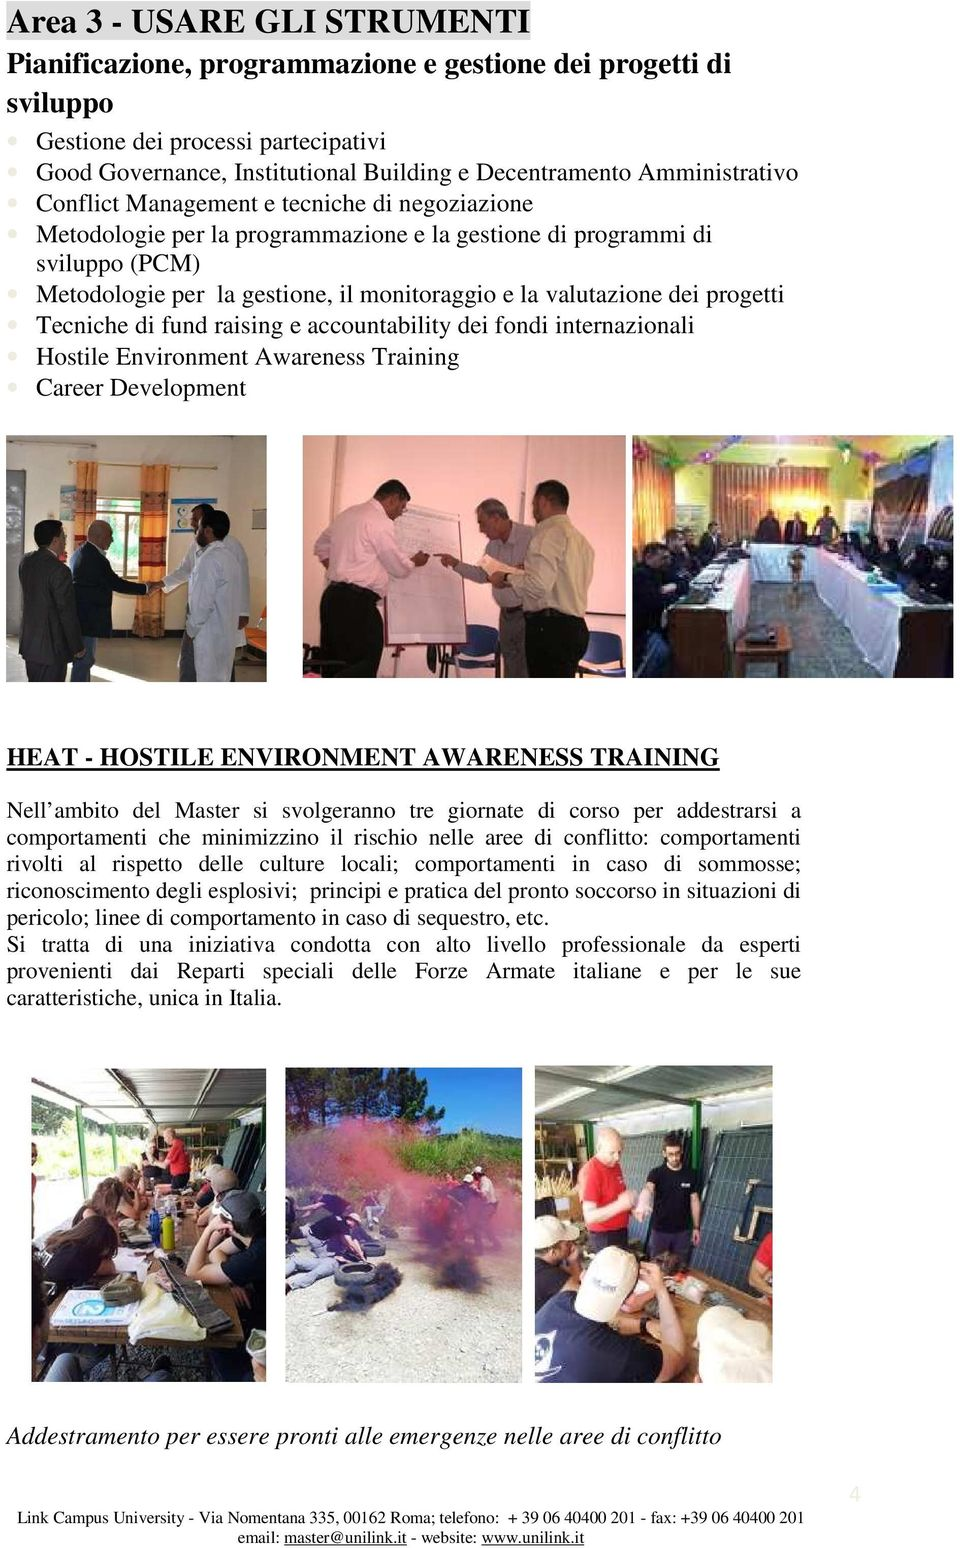 valutazione dei progetti Tecniche di fund raising e accountability dei fondi internazionali Hostile Environment Awareness Training Career Development HEAT - HOSTILE ENVIRONMENT AWARENESS TRAINING